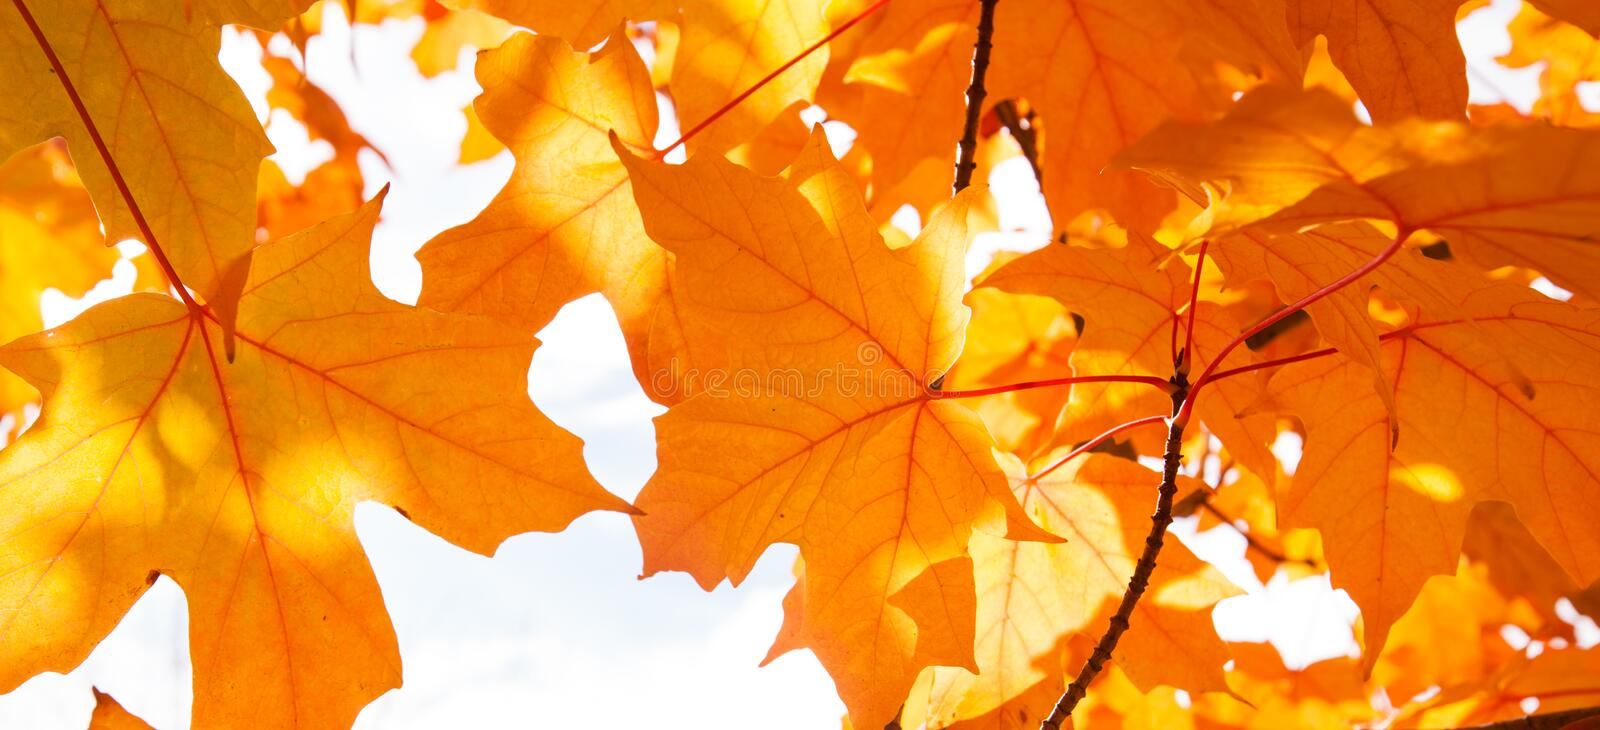 Download Autumn Abstract stock image. Image of landscape, orange - 30809273